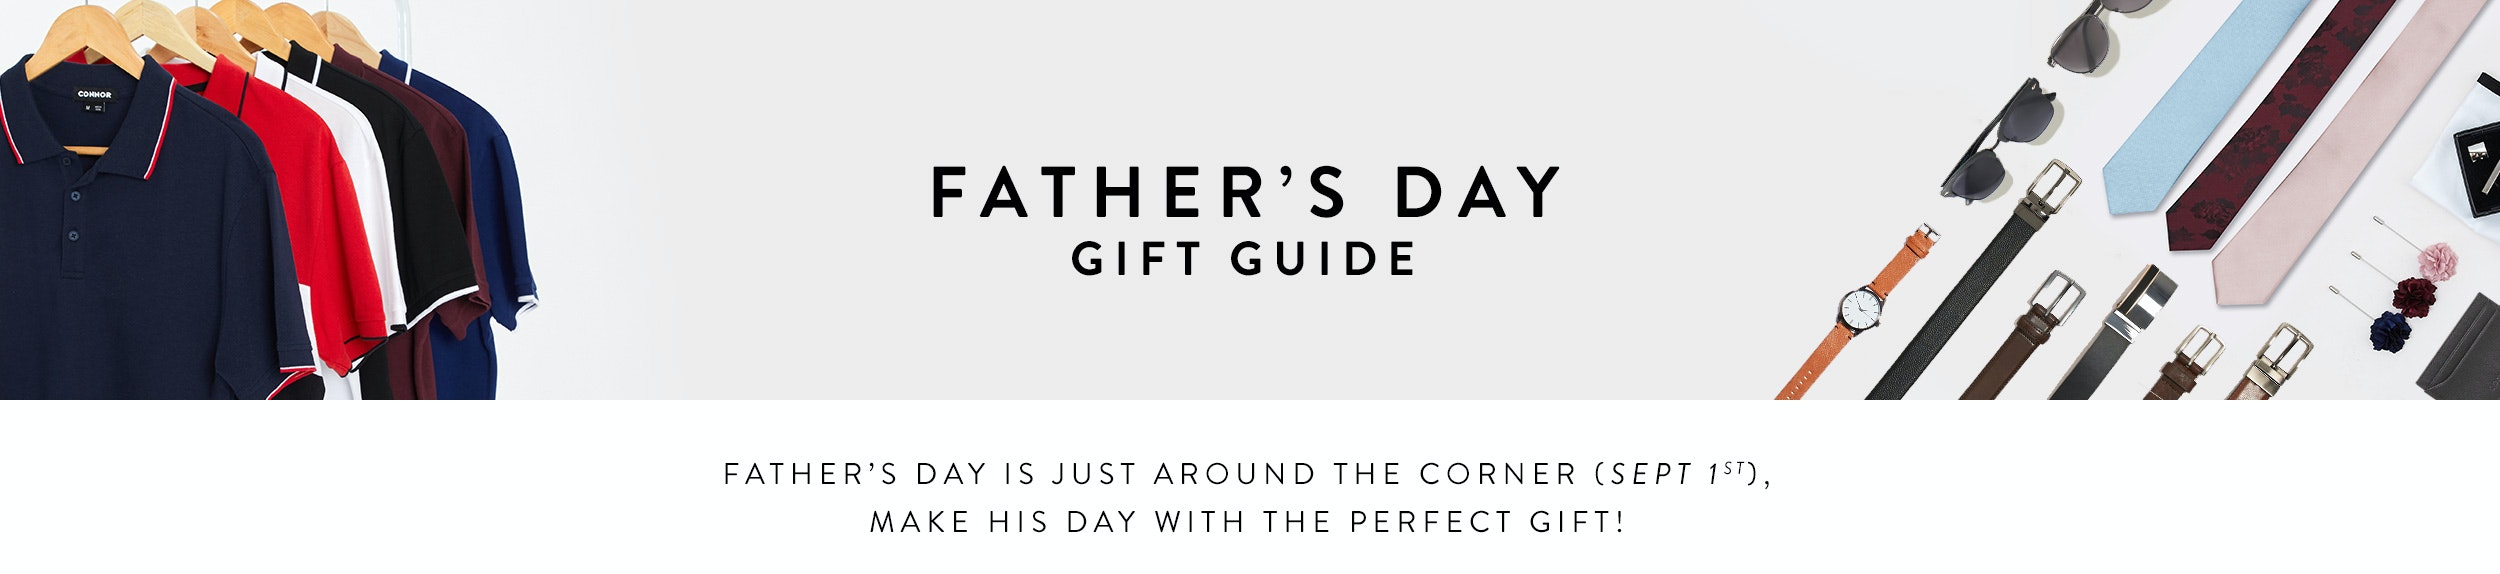 Shop Fathers Day Gift Guide